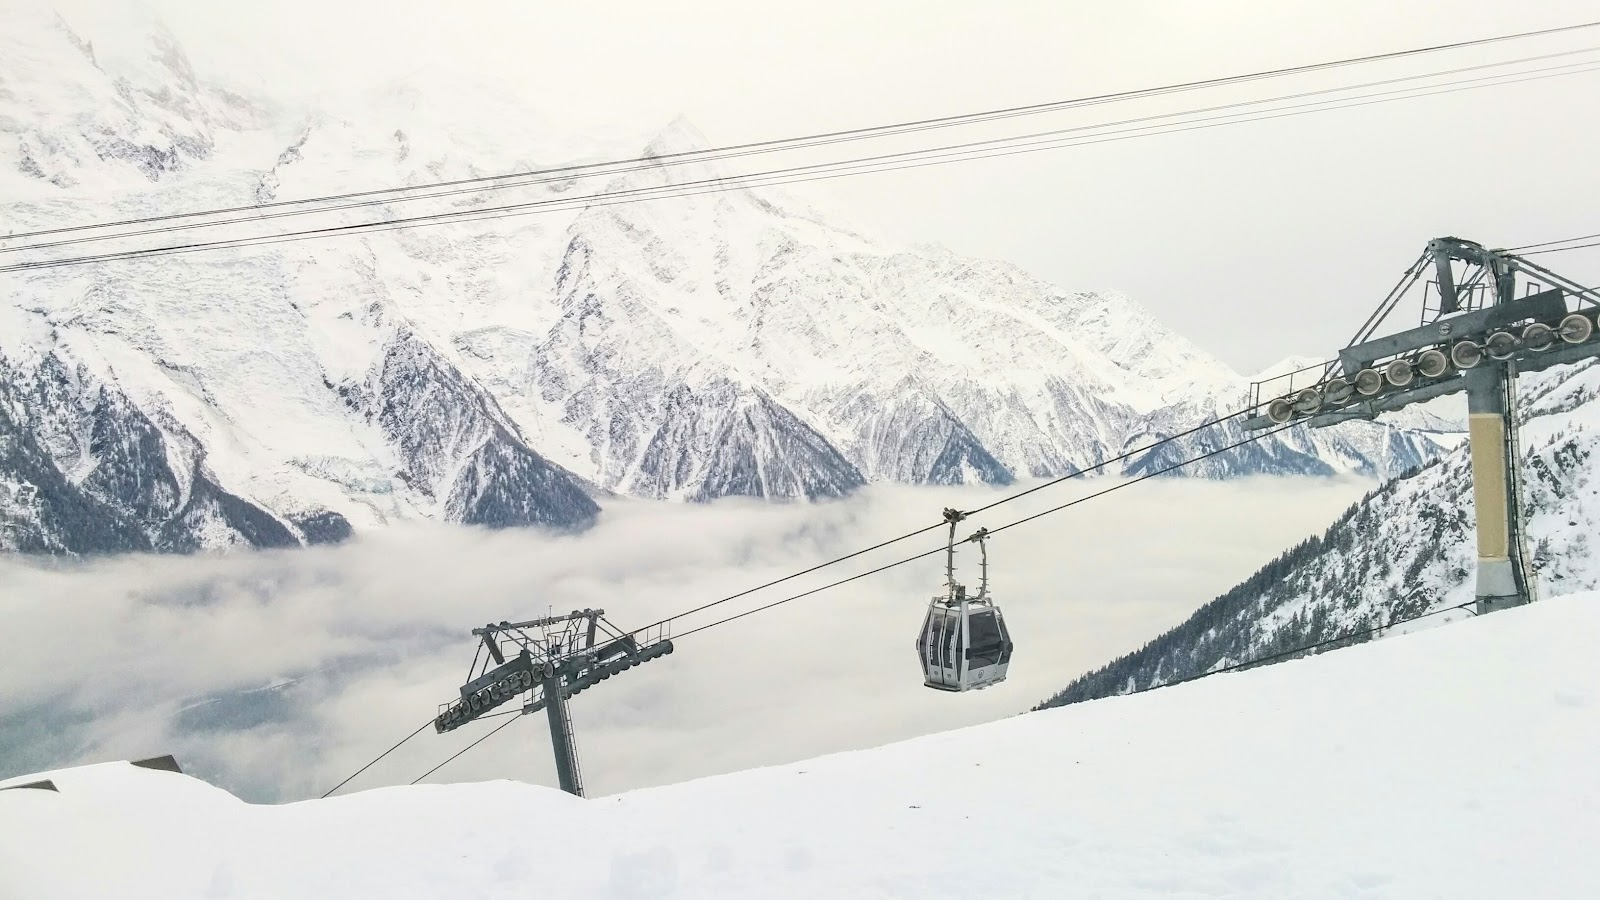 Chamonix is the best place to ski for beginners